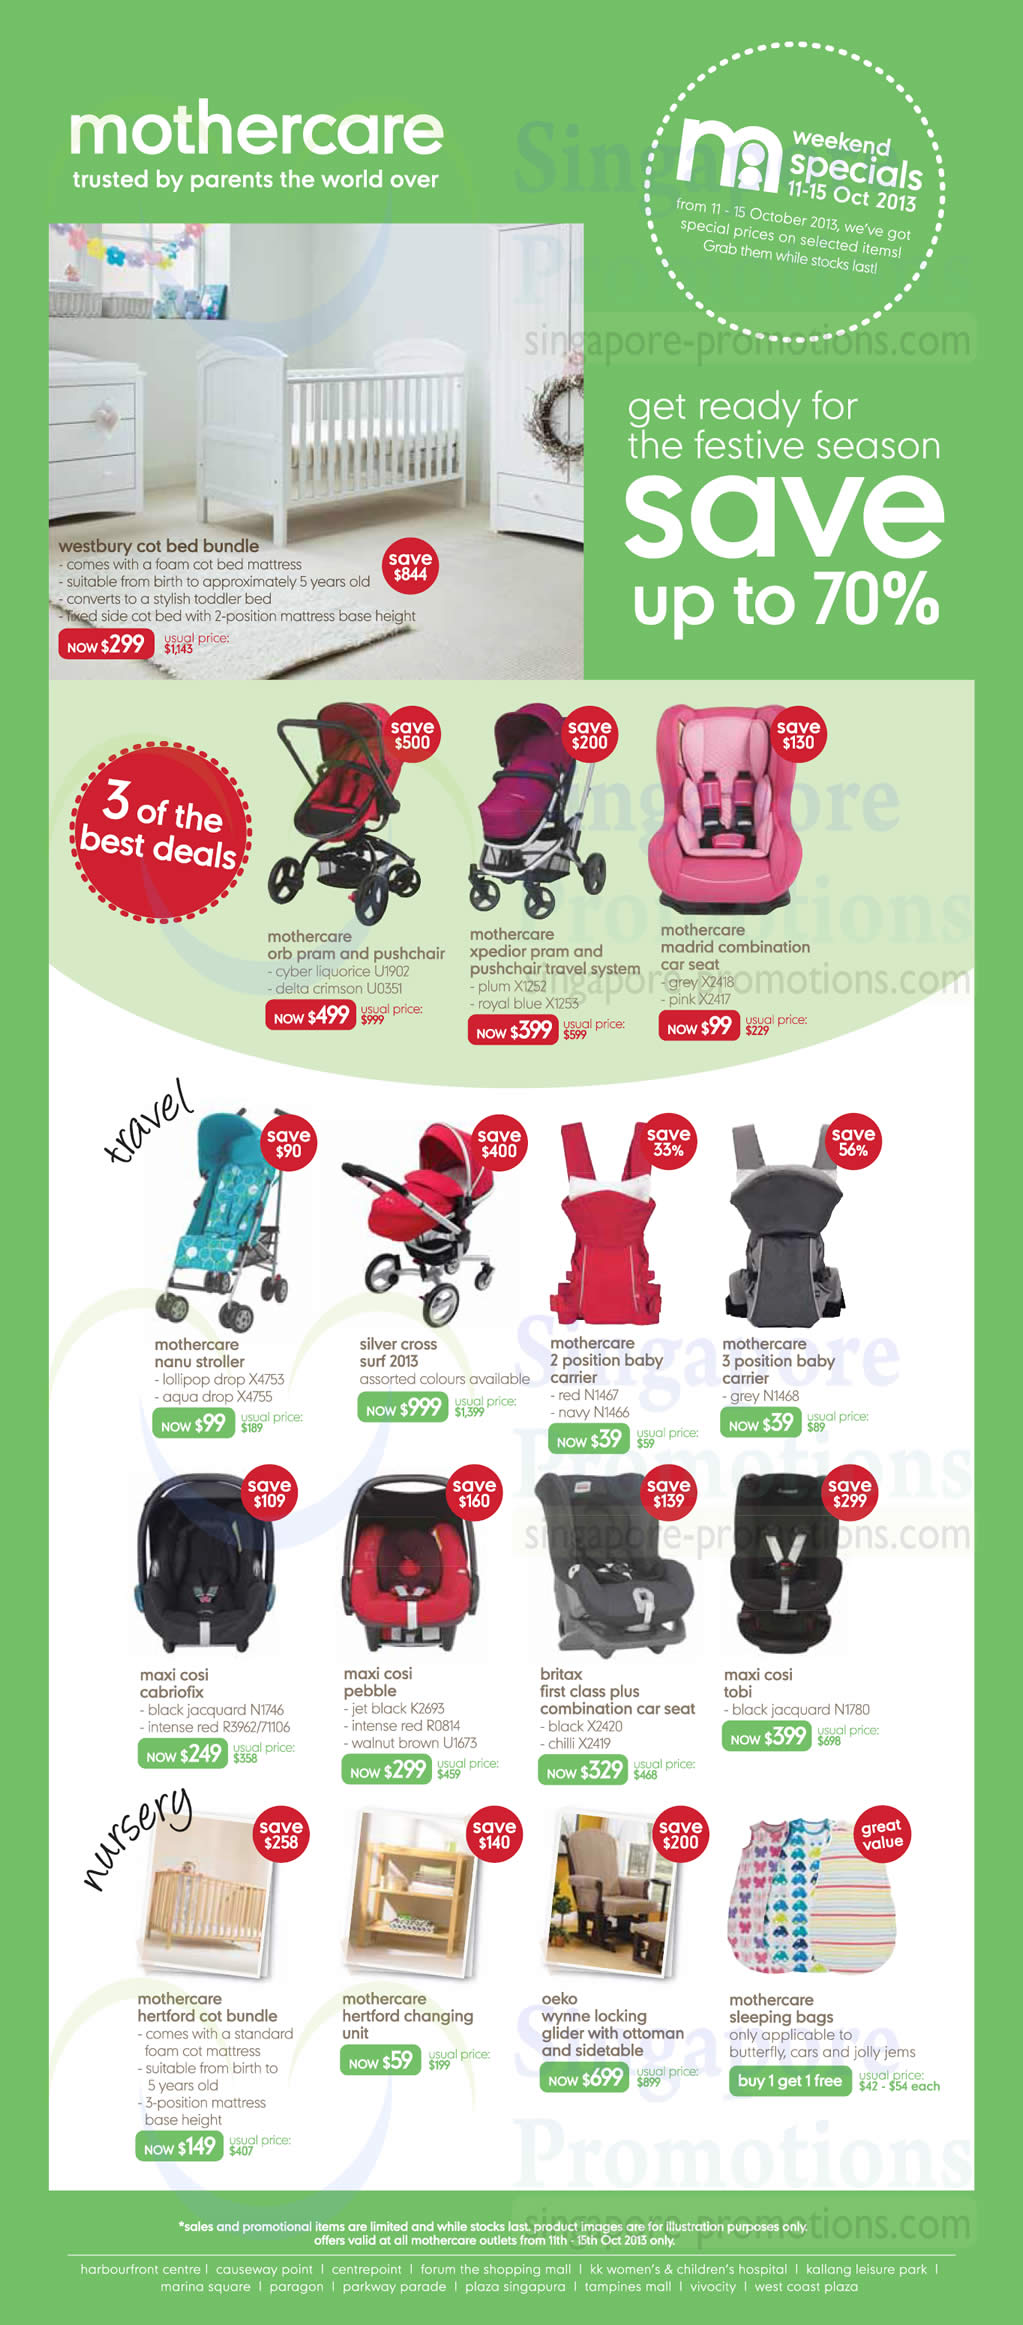 Maxi Cosi Car Seat On Mothercare Xpedior Mothercare Up To 70 Off October Weekend Specials 11 15